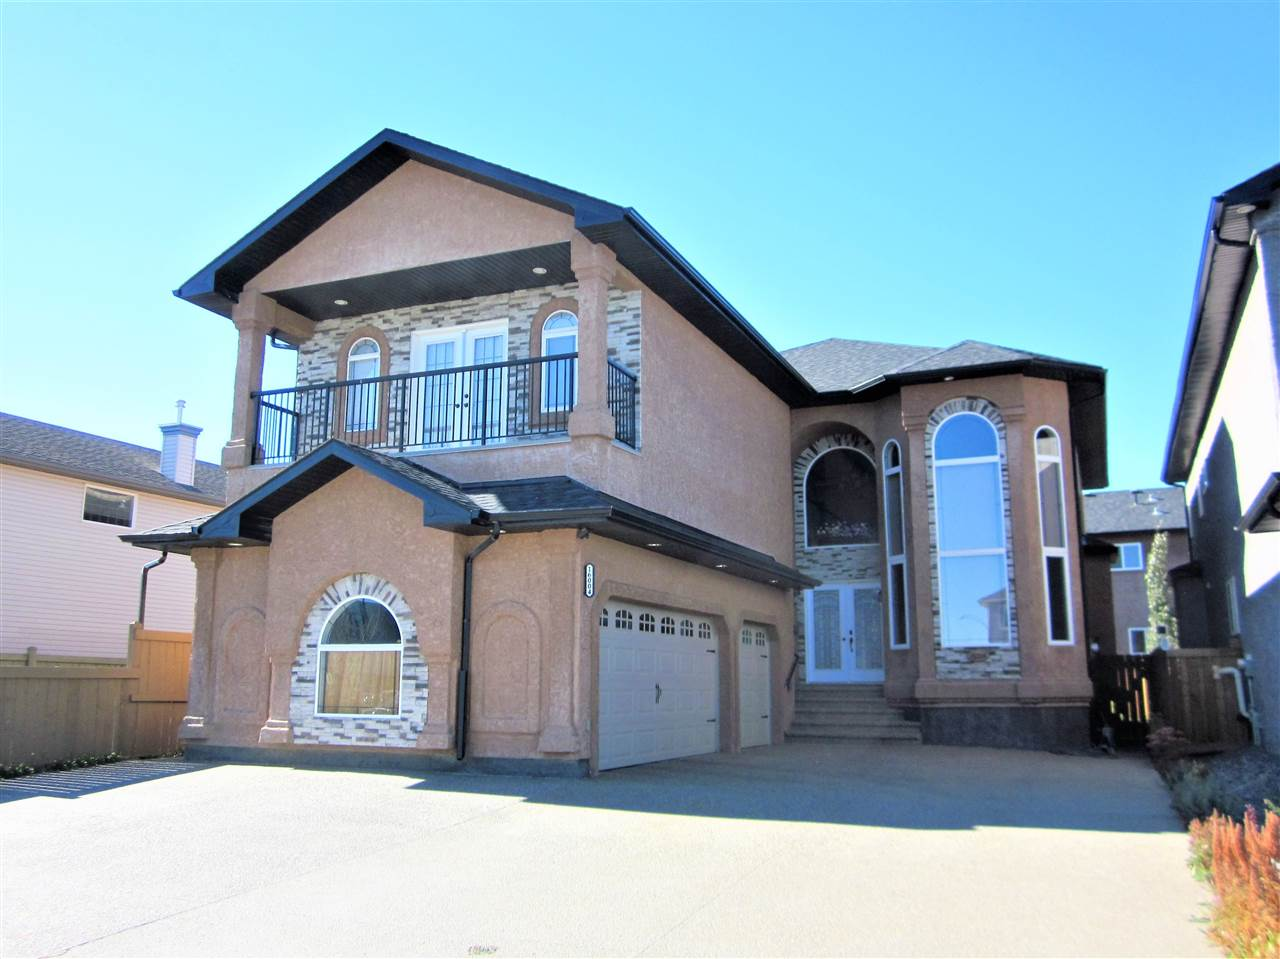 Main Photo: 16004 139 Street in Edmonton: Zone 27 House for sale : MLS®# E4123840